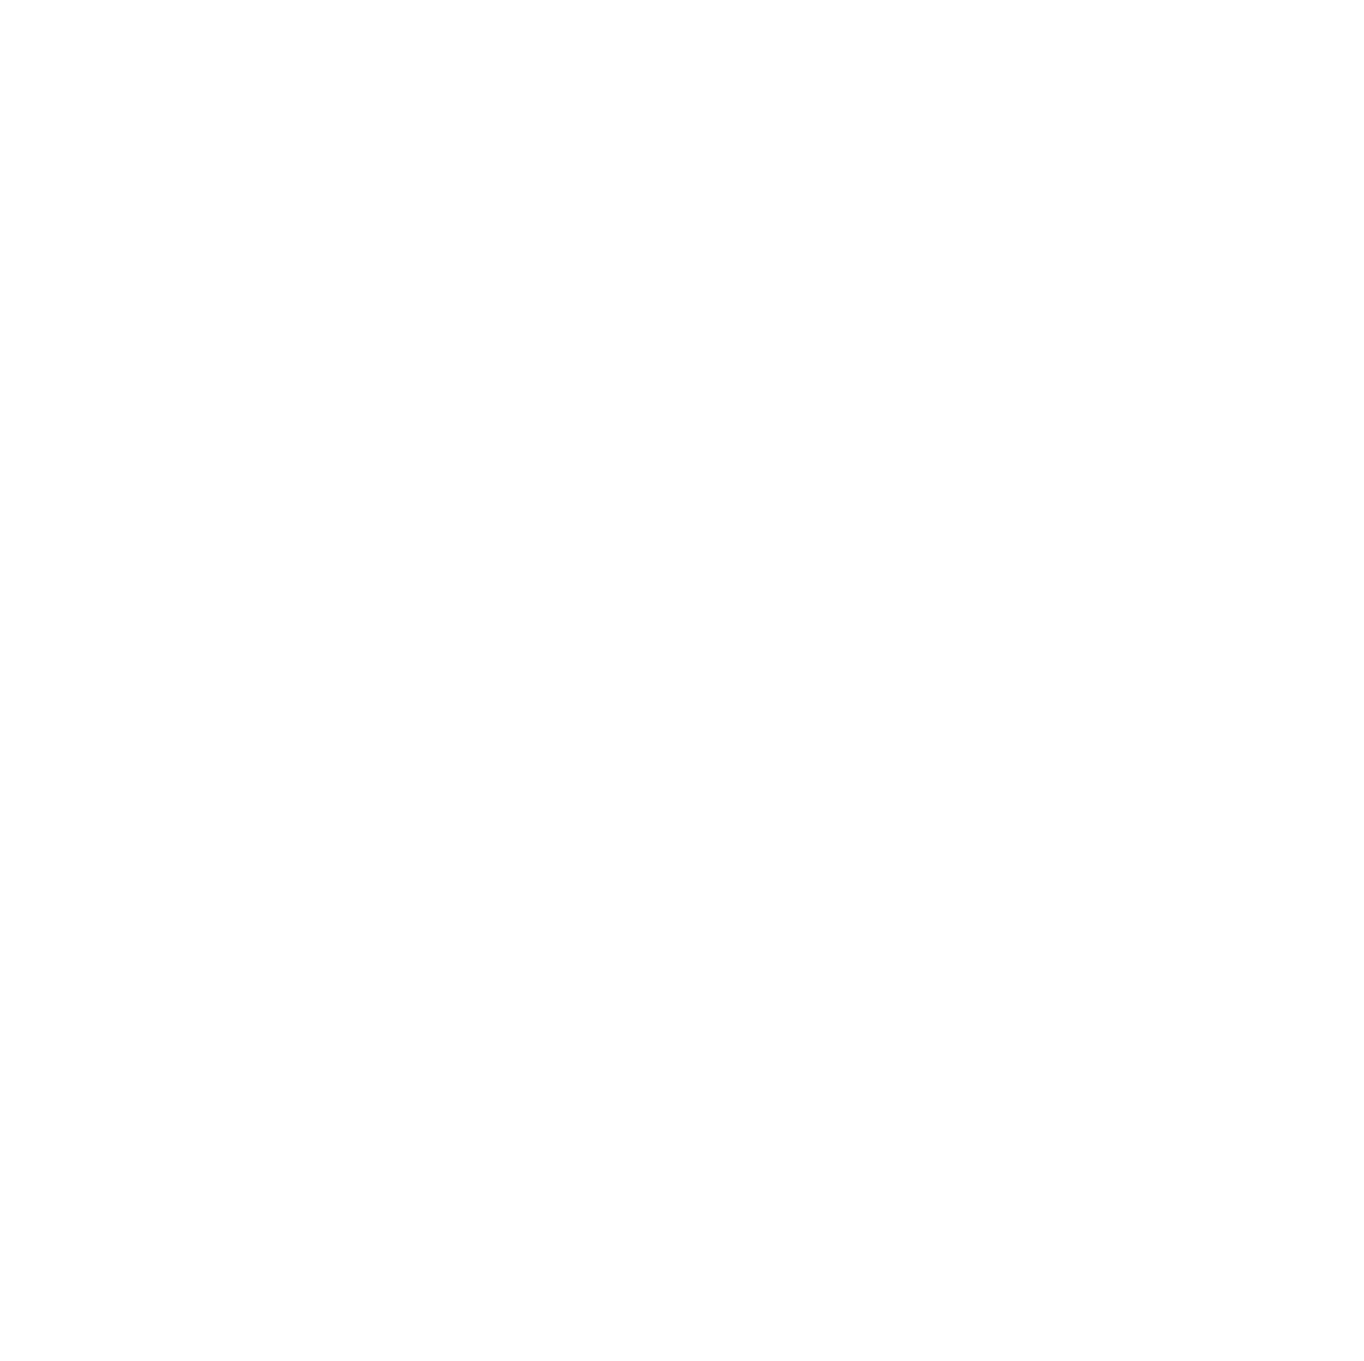 Patrick & Co. Events